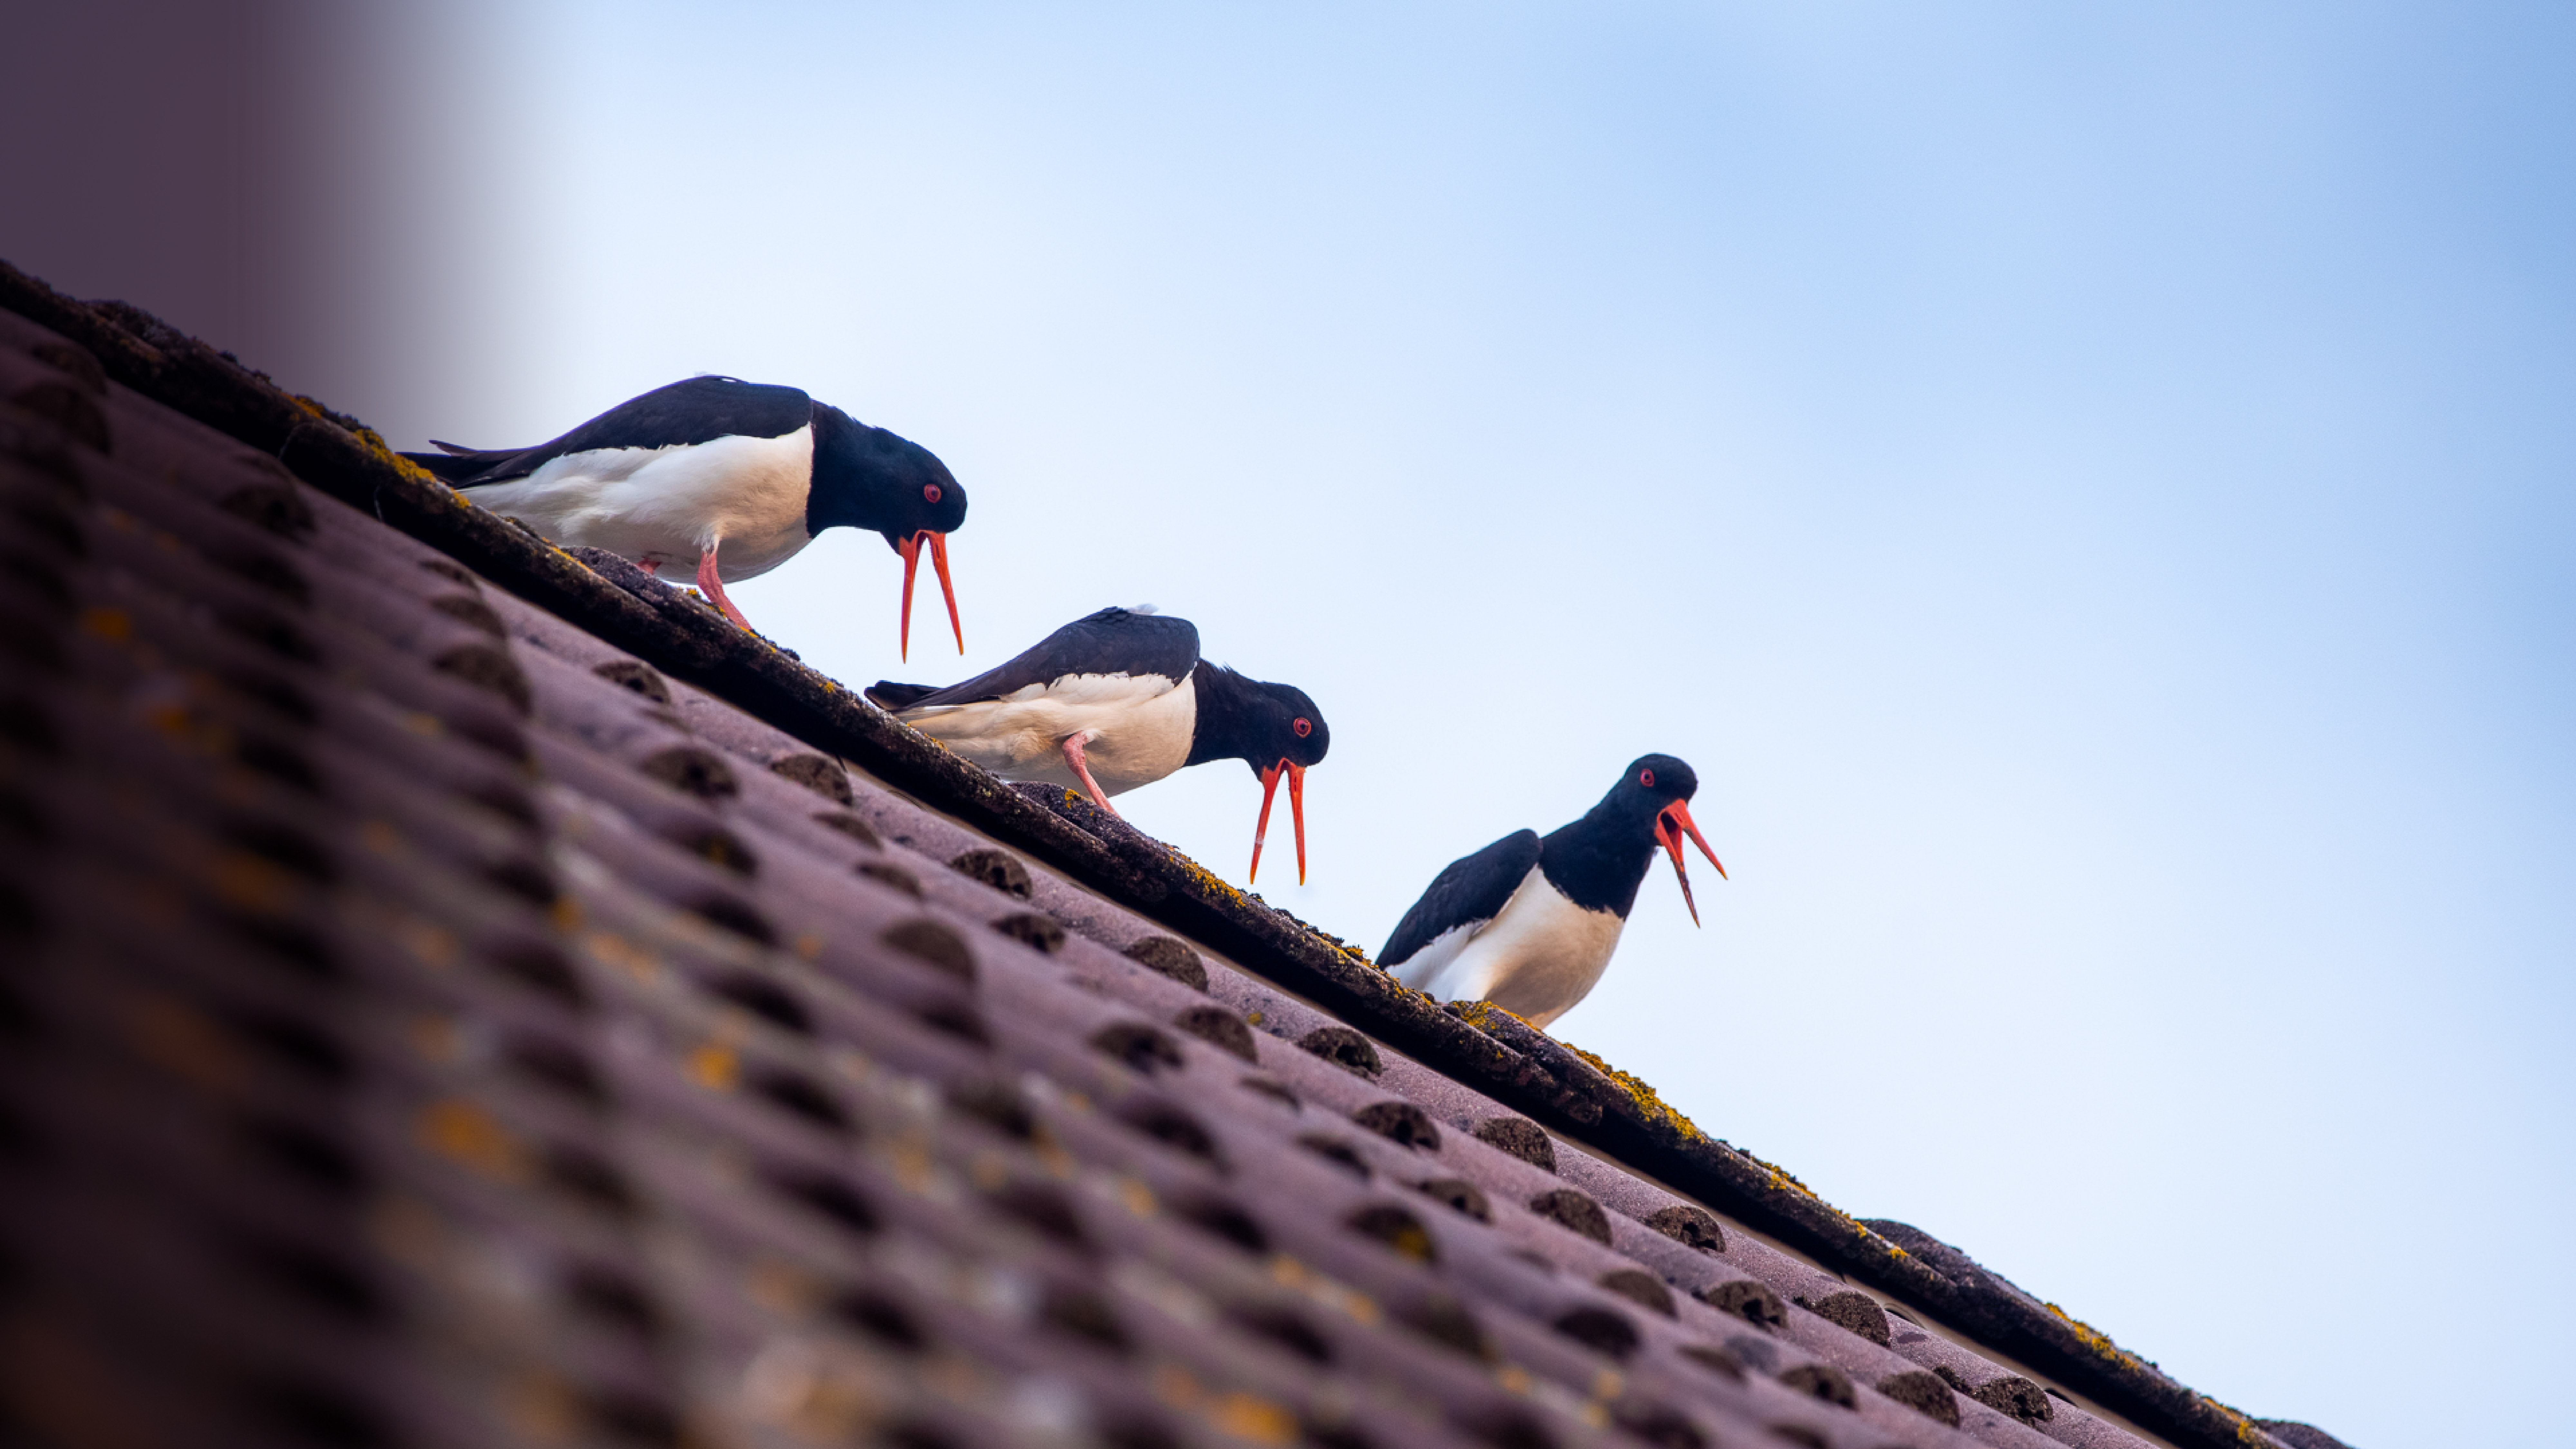 Urban Oystercatchers